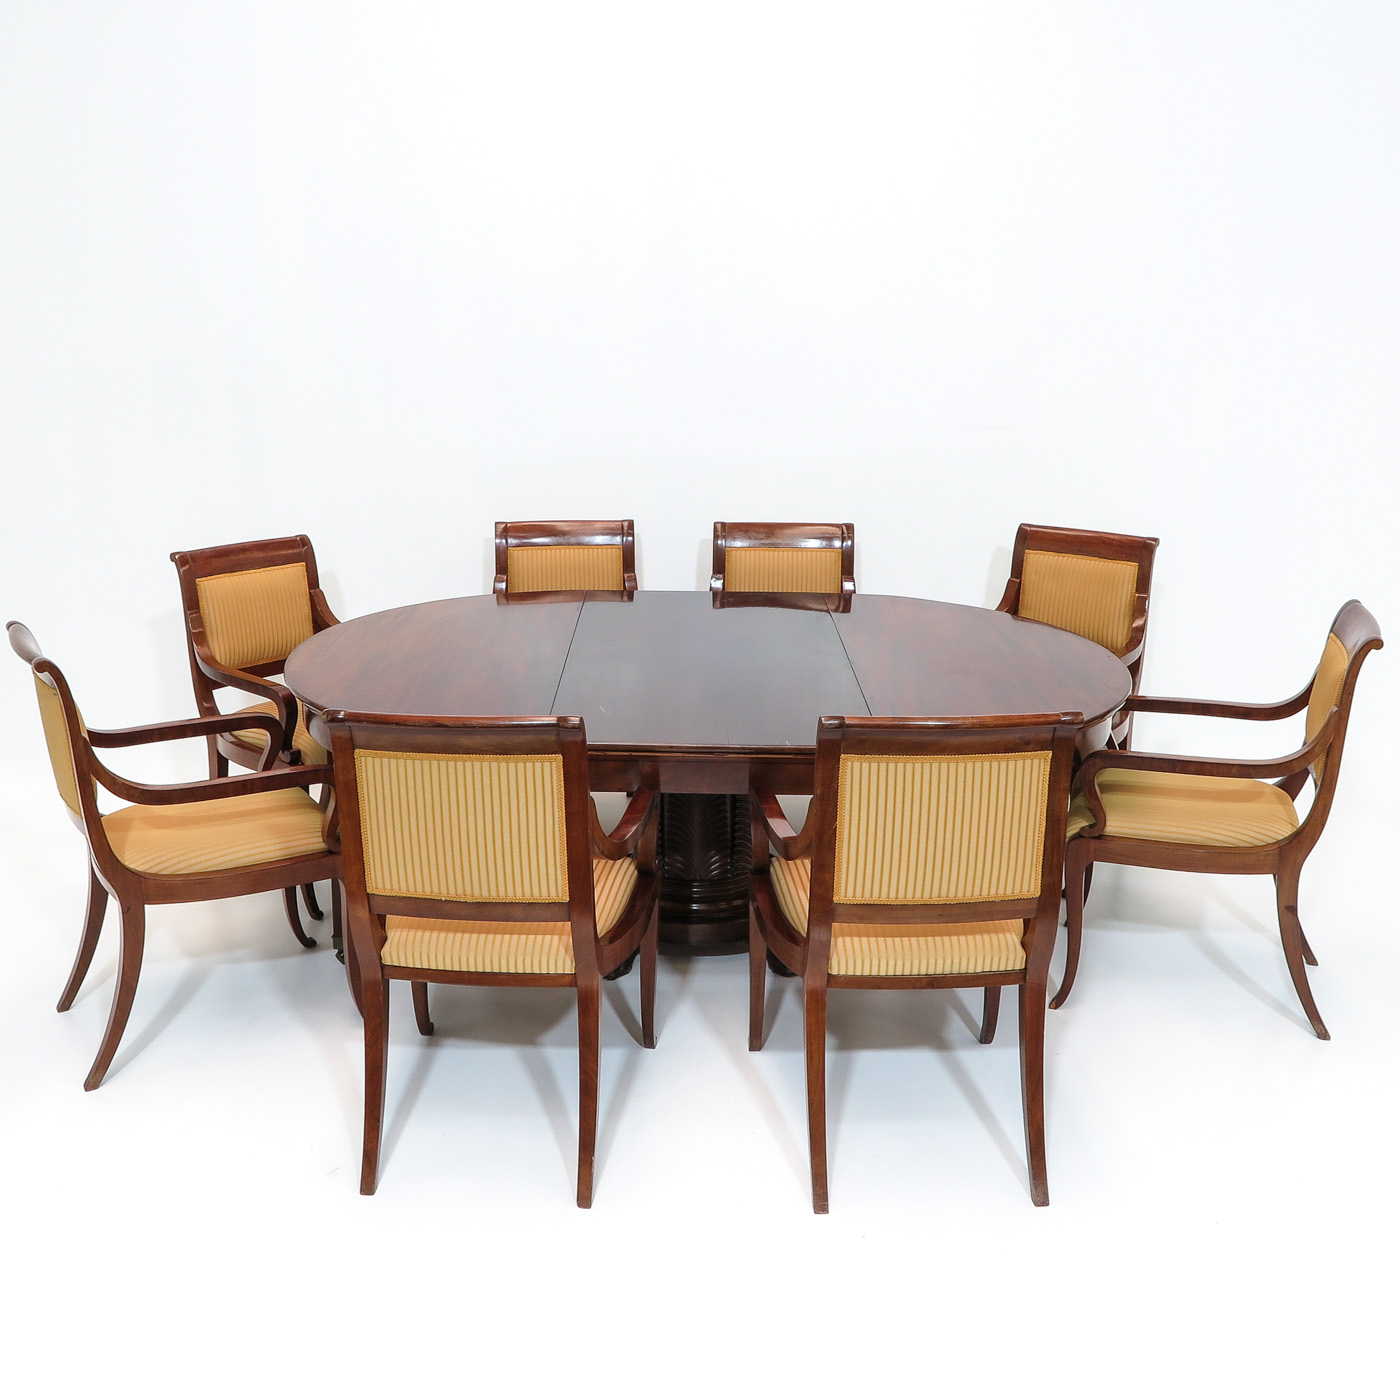 Lot 1104 - A Mahogany Table and 8 Chairs